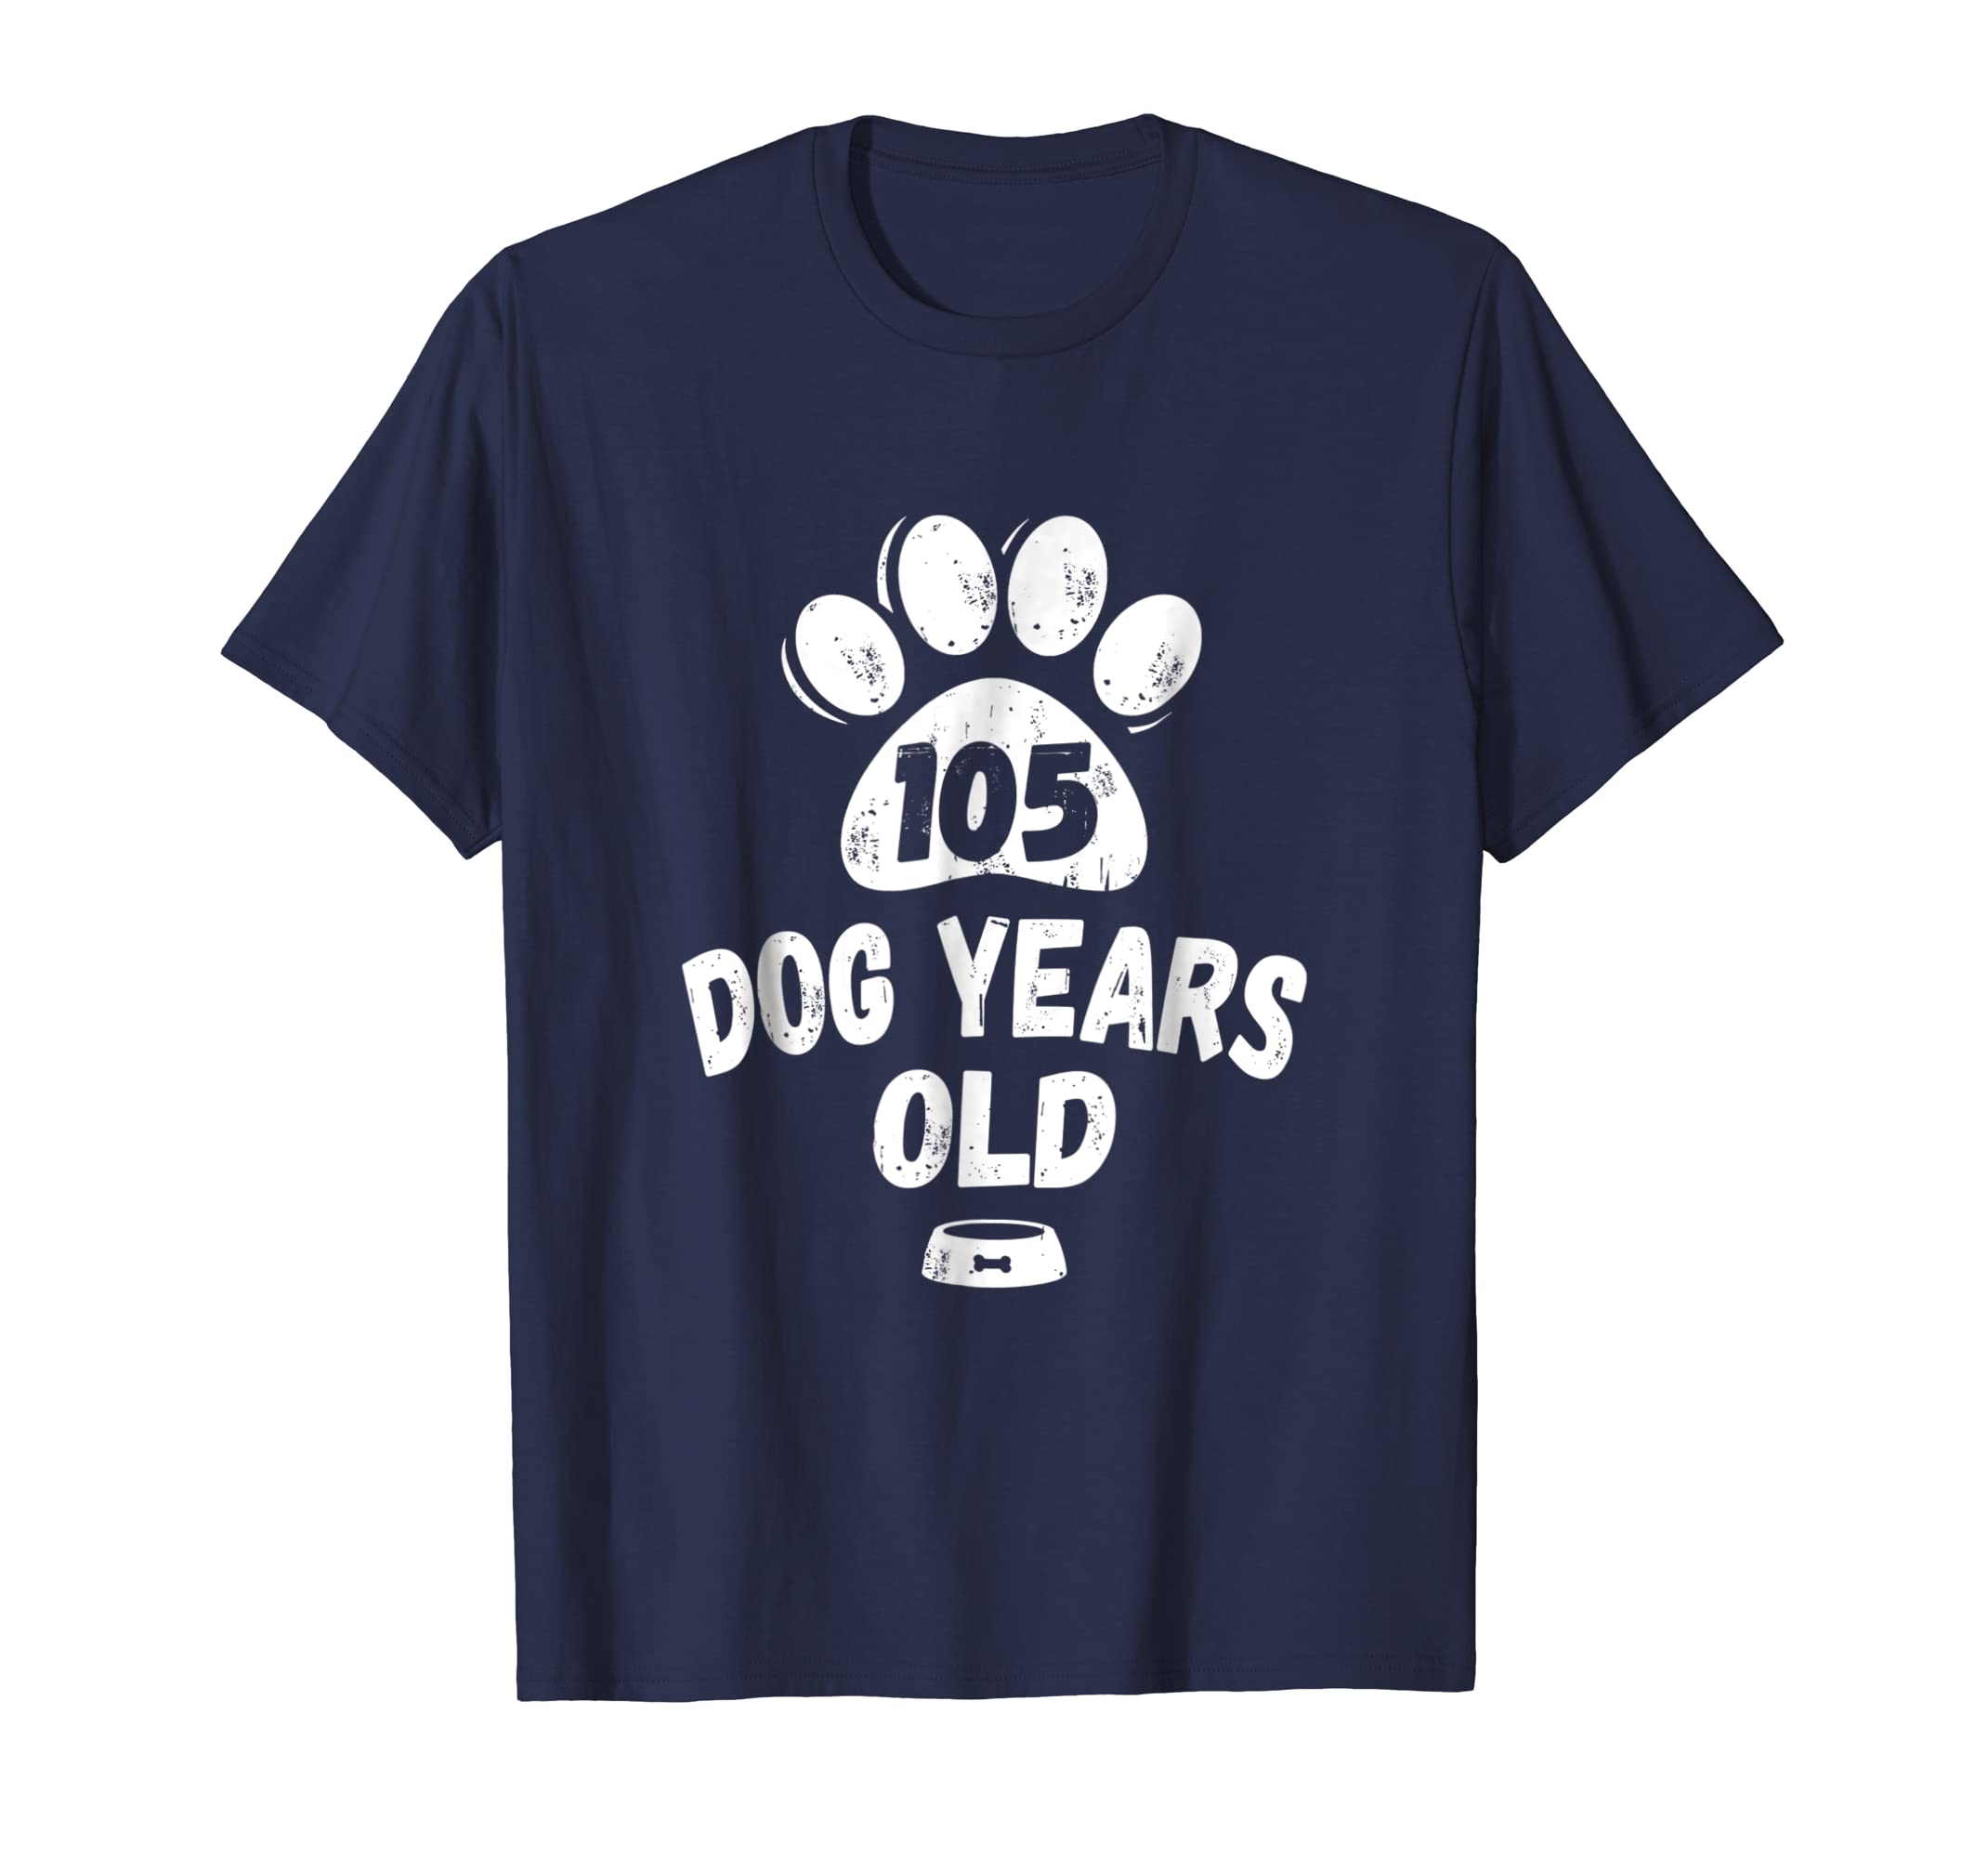 105 Dog Years Old - 15 Years Old Bday T-Shirt-AZP